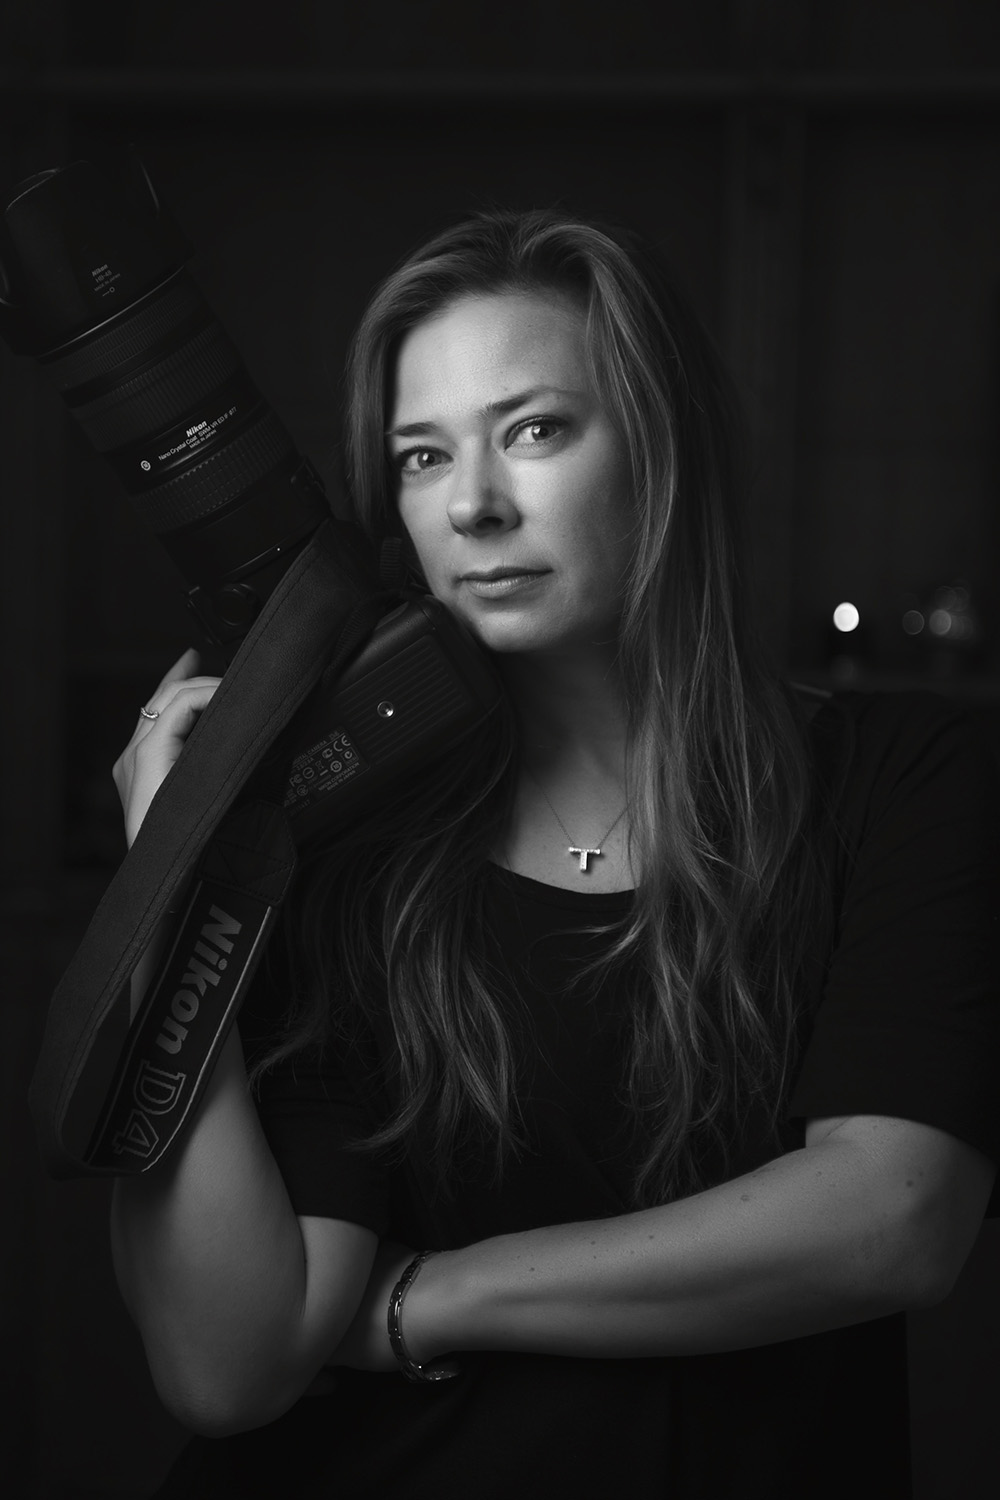 black and white photo of melbourne photographer Tanya wilson photographer posing with camera near face